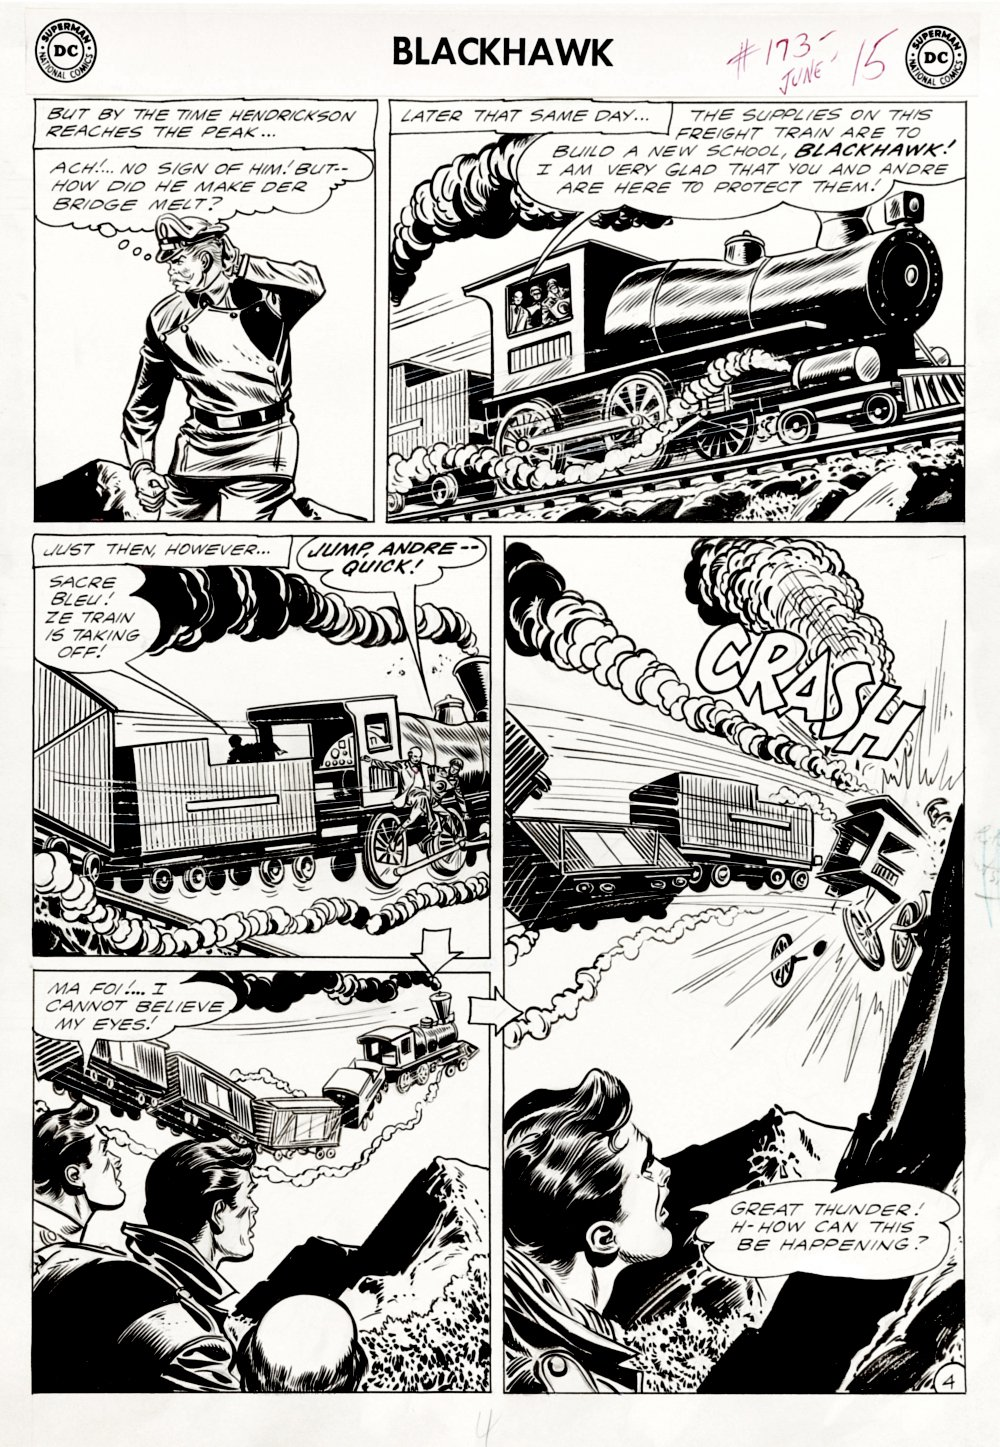 Blackhawk #173 p 4 (Blackhawk & Andre Train Crash!) Large Art - 1962